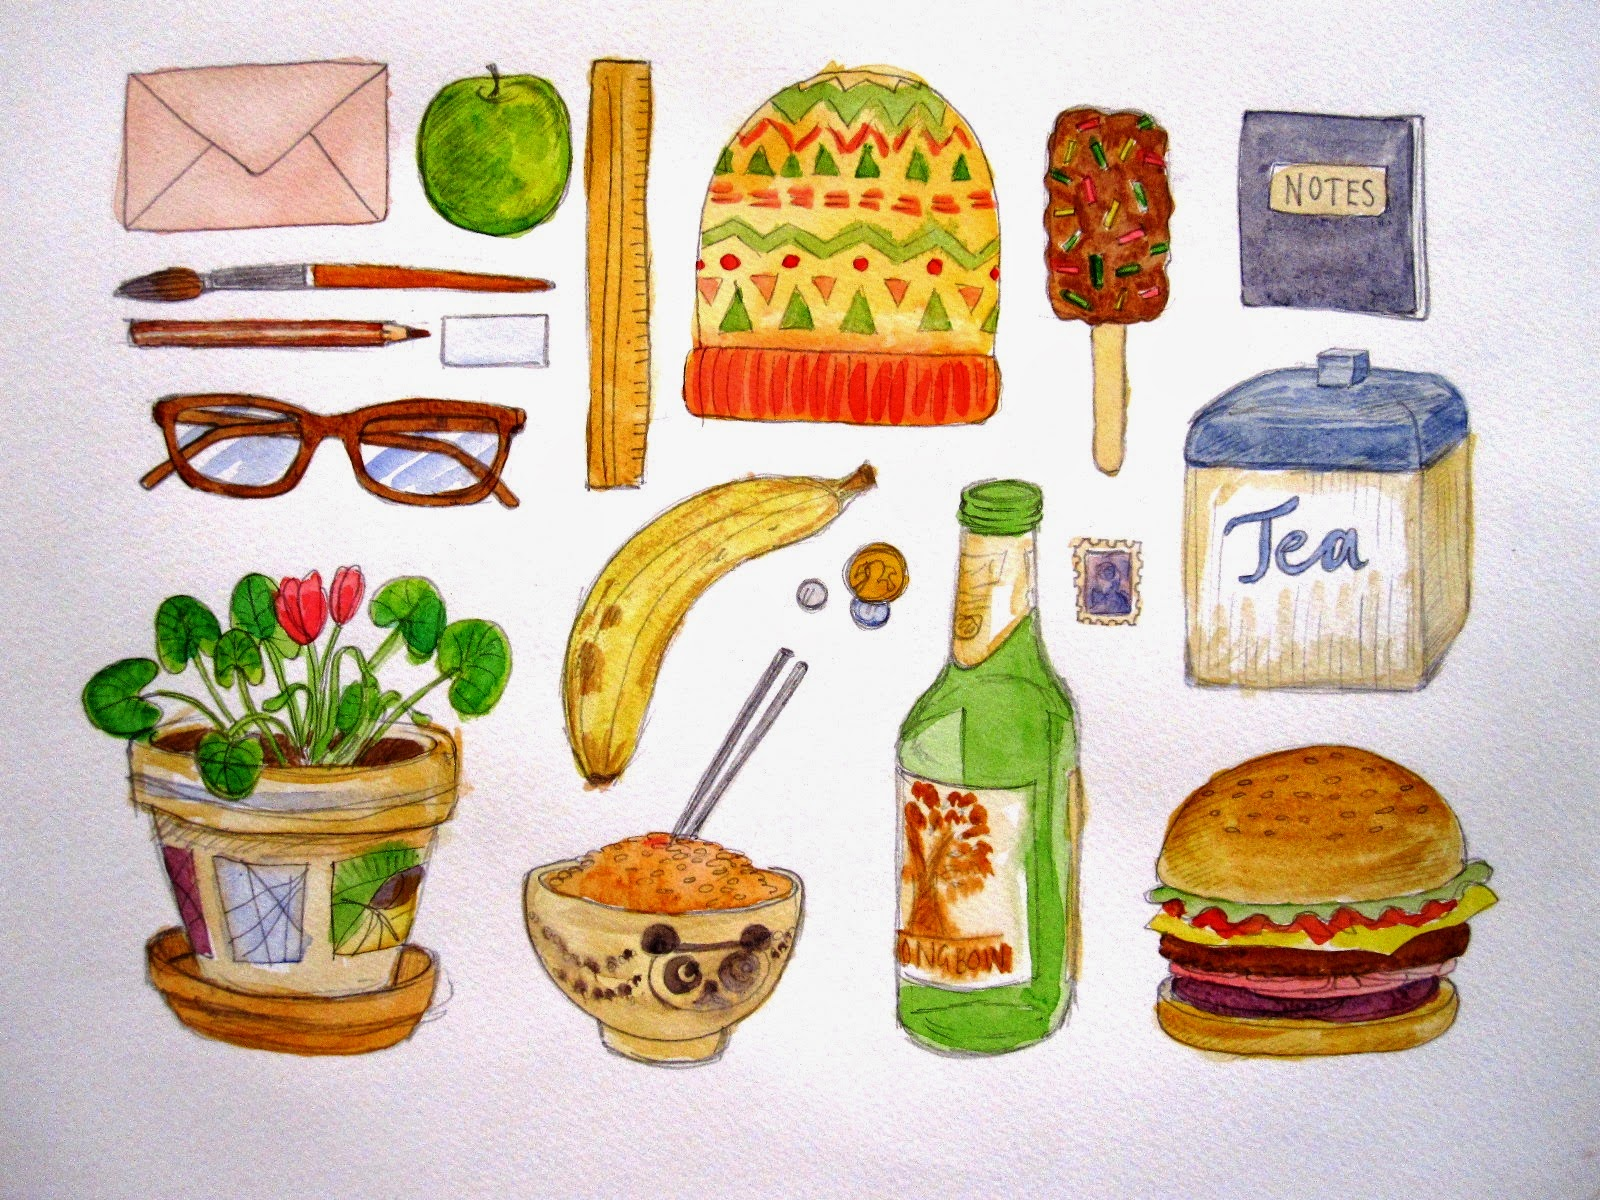 Coloured sketches of  range of  items including an envelope, knitted hat, glasses, banana and burger.